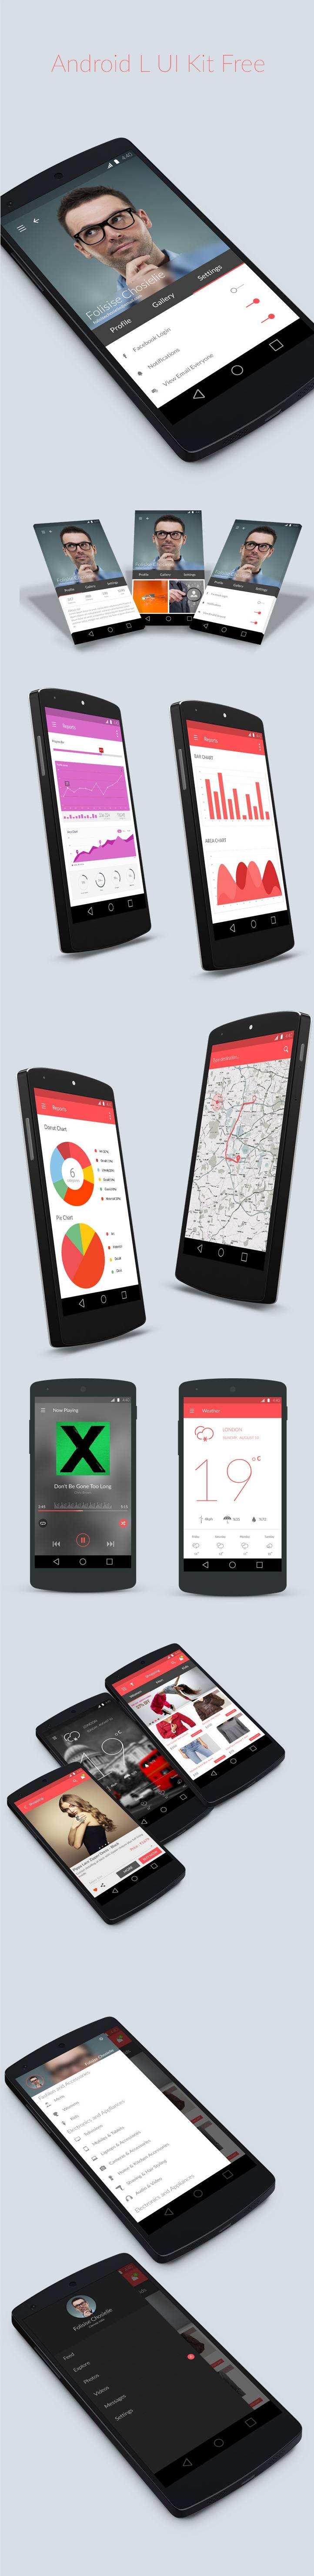 Android L UI主题包下载